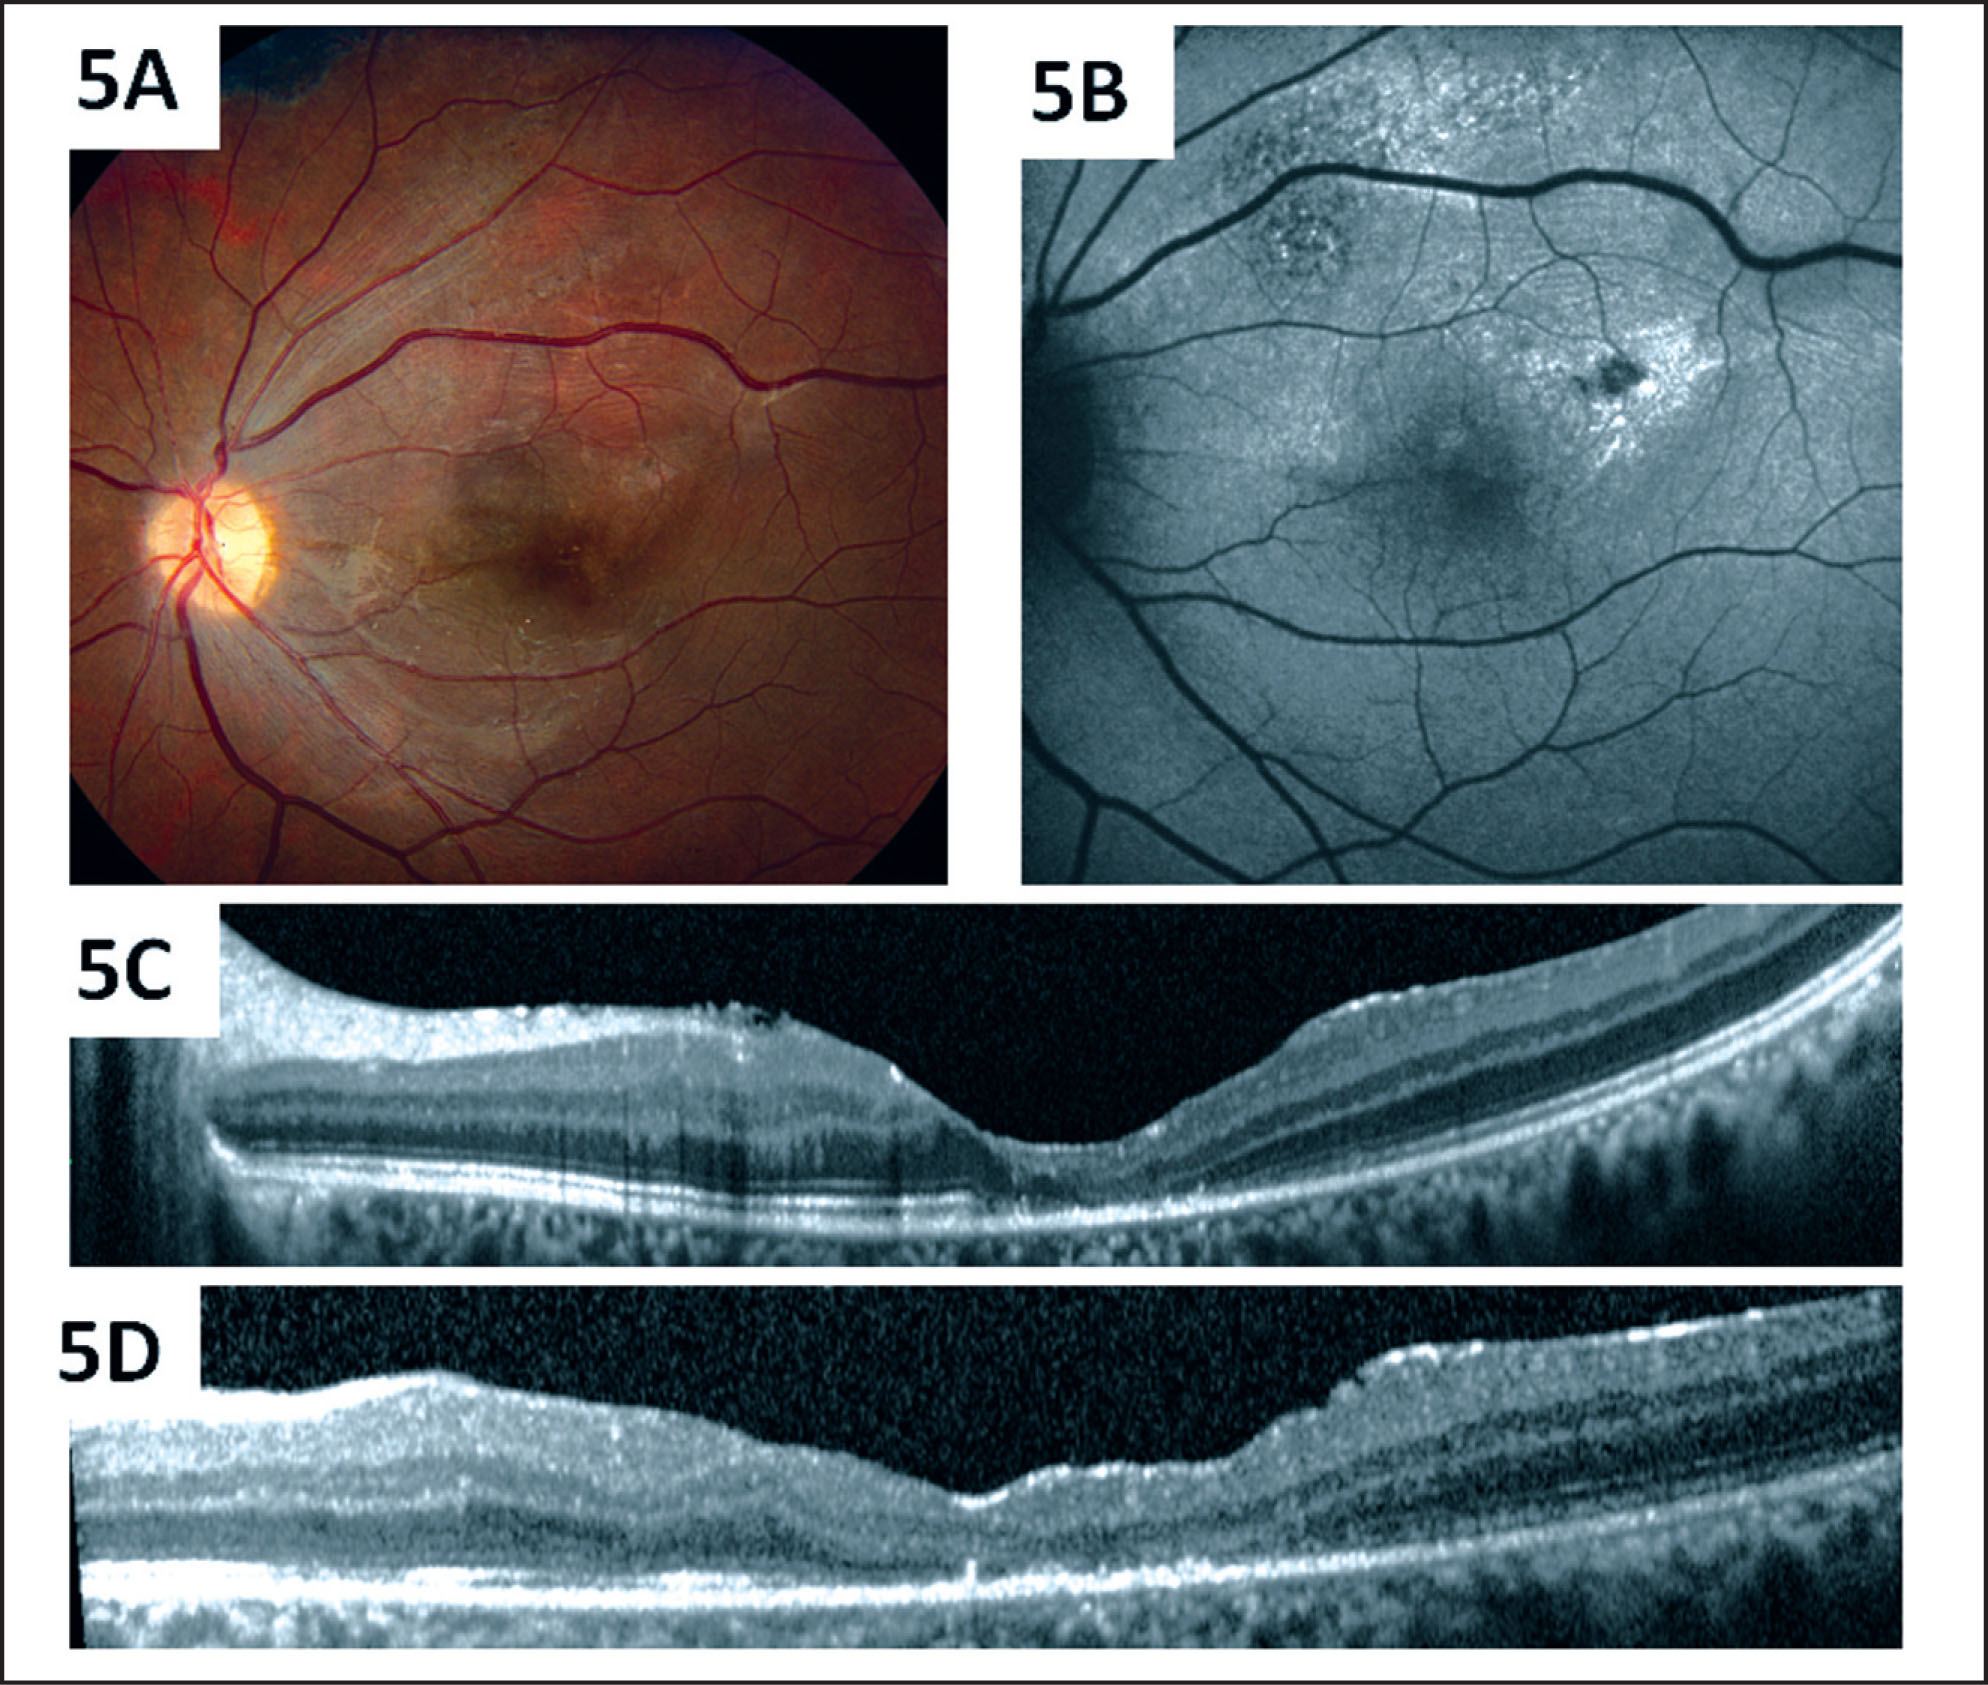 Postoperative Images of the Left Macula 1 Month After Surgery. (A) Fundus Photography Shows Closure of the Full-Thickness Macular Hole and Areas of Pigmentary Changes. (B) Fundus Autofluorescence Shows Normal Autofluorescence Centrally and Persistent Abnormalities Superiorly and Temporally. (C) Spectral-Domain Optical Coherence Tomography (SD-OCT) (Spectralis; Heidelberg Engineering, Heidelberg, Germany) of the Fovea Shows Full-Thickness Macular Hole Closure with Loss of the Normal Lamellar Retinal Architecture Centrally and Loss of Reflectivity Along the Outer Retina Along the Reflective Band Corresponding to the Photoreceptor Outer Segment/inner Segment Junction. (D) SD-OCT Just Superior to the Fovea Shows an Irregular Foveal Contour and Disruption of the Outer Retinal Architecture.